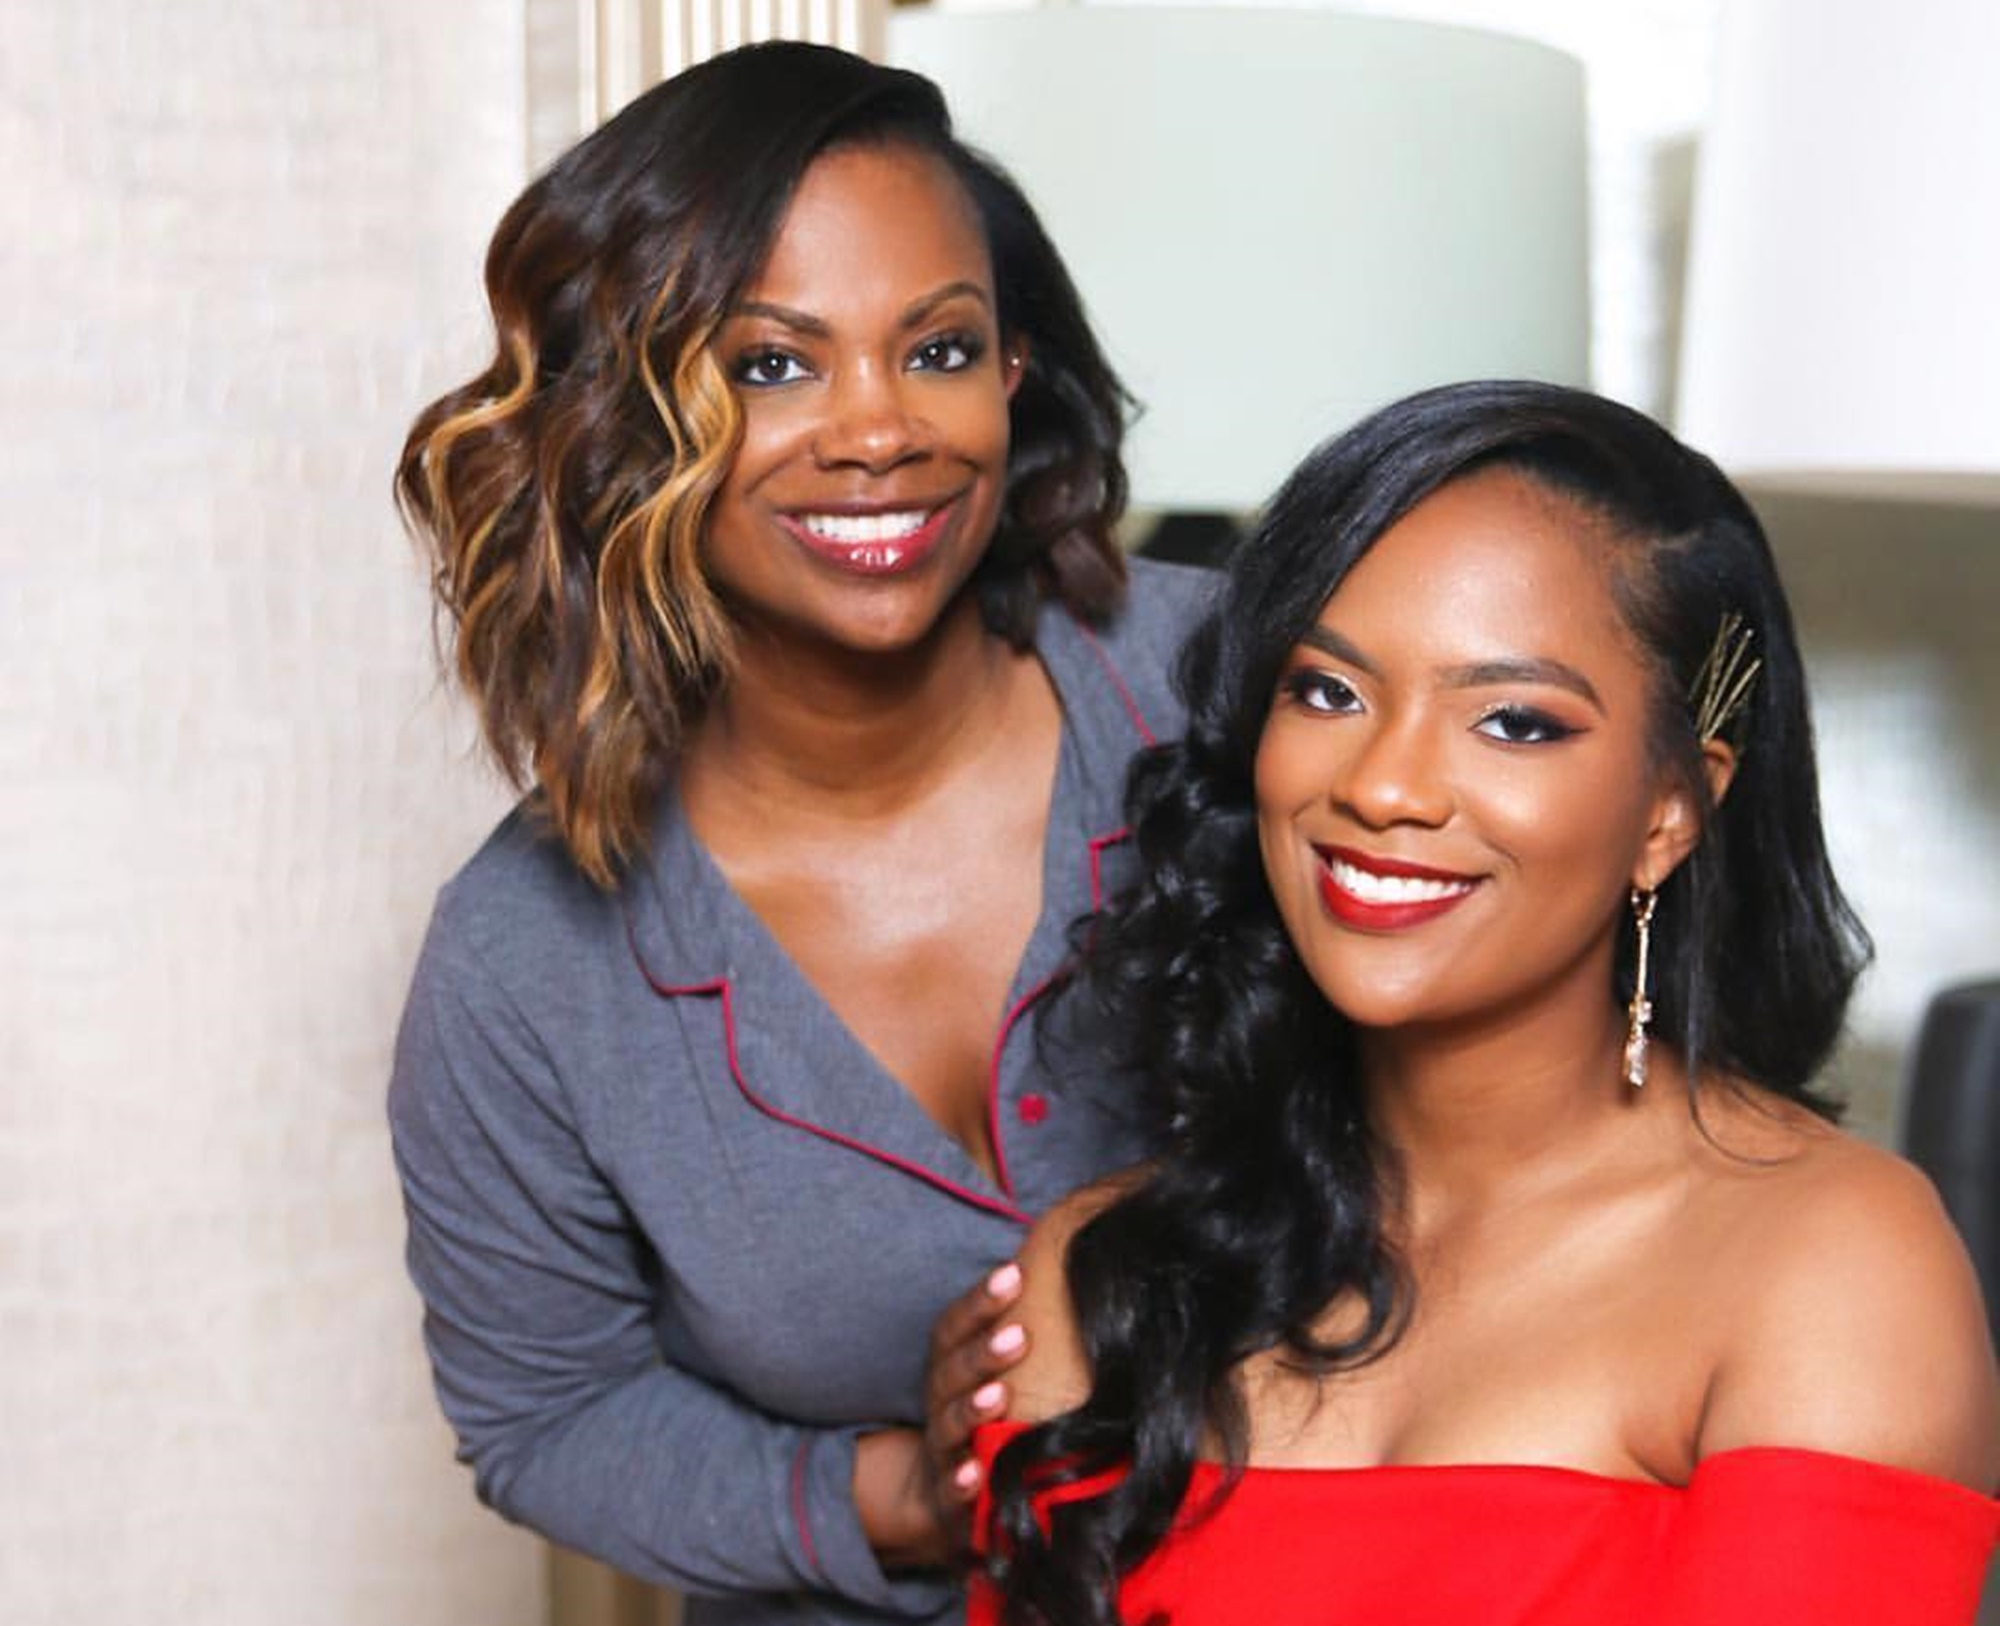 Kandi Burruss Riley RHOA Prom Night